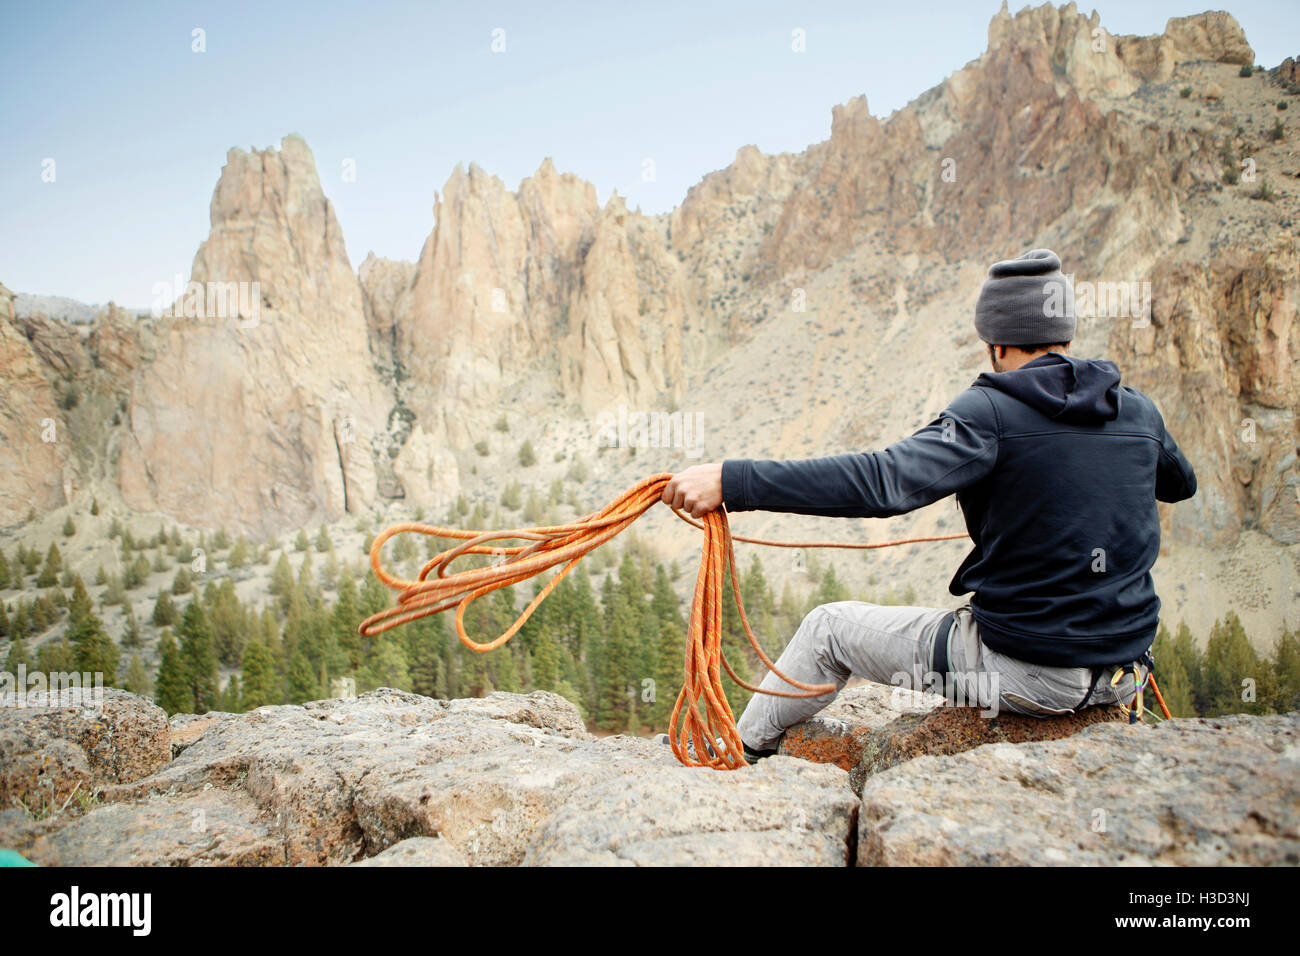 Rear view of rock climber throwing rope while siting on mountain - Stock Image